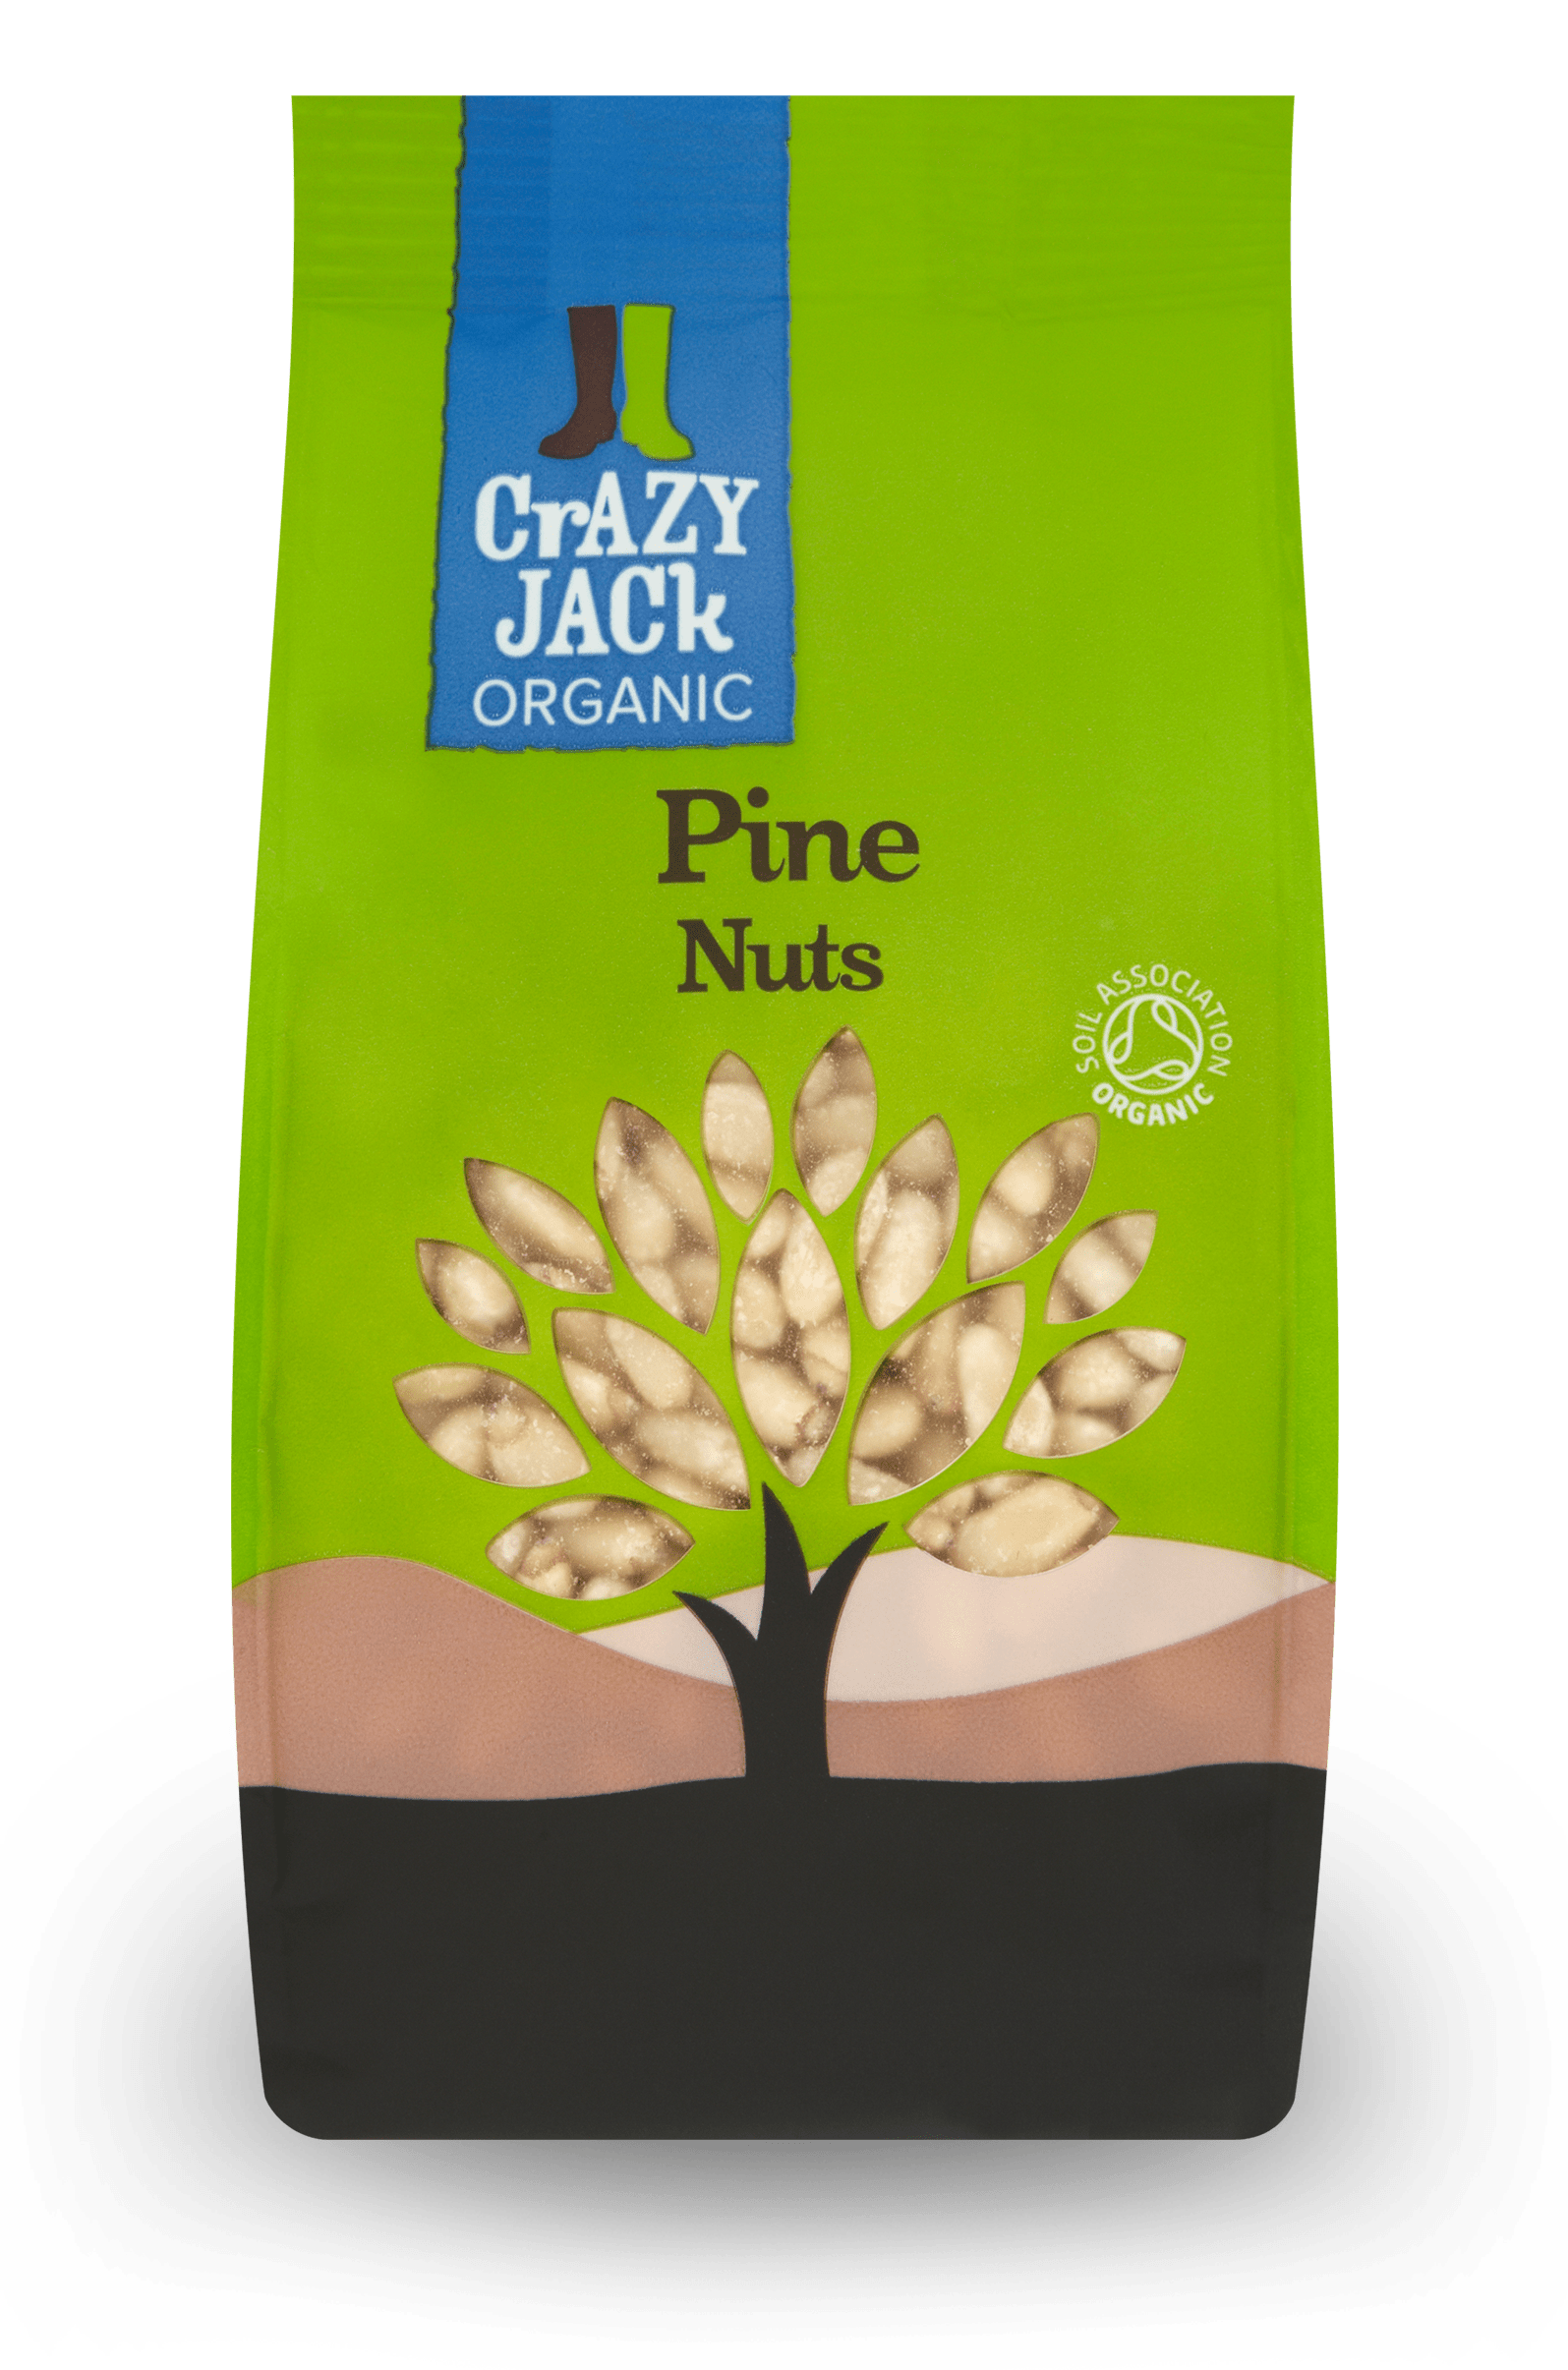 Packet of organic pine nuts